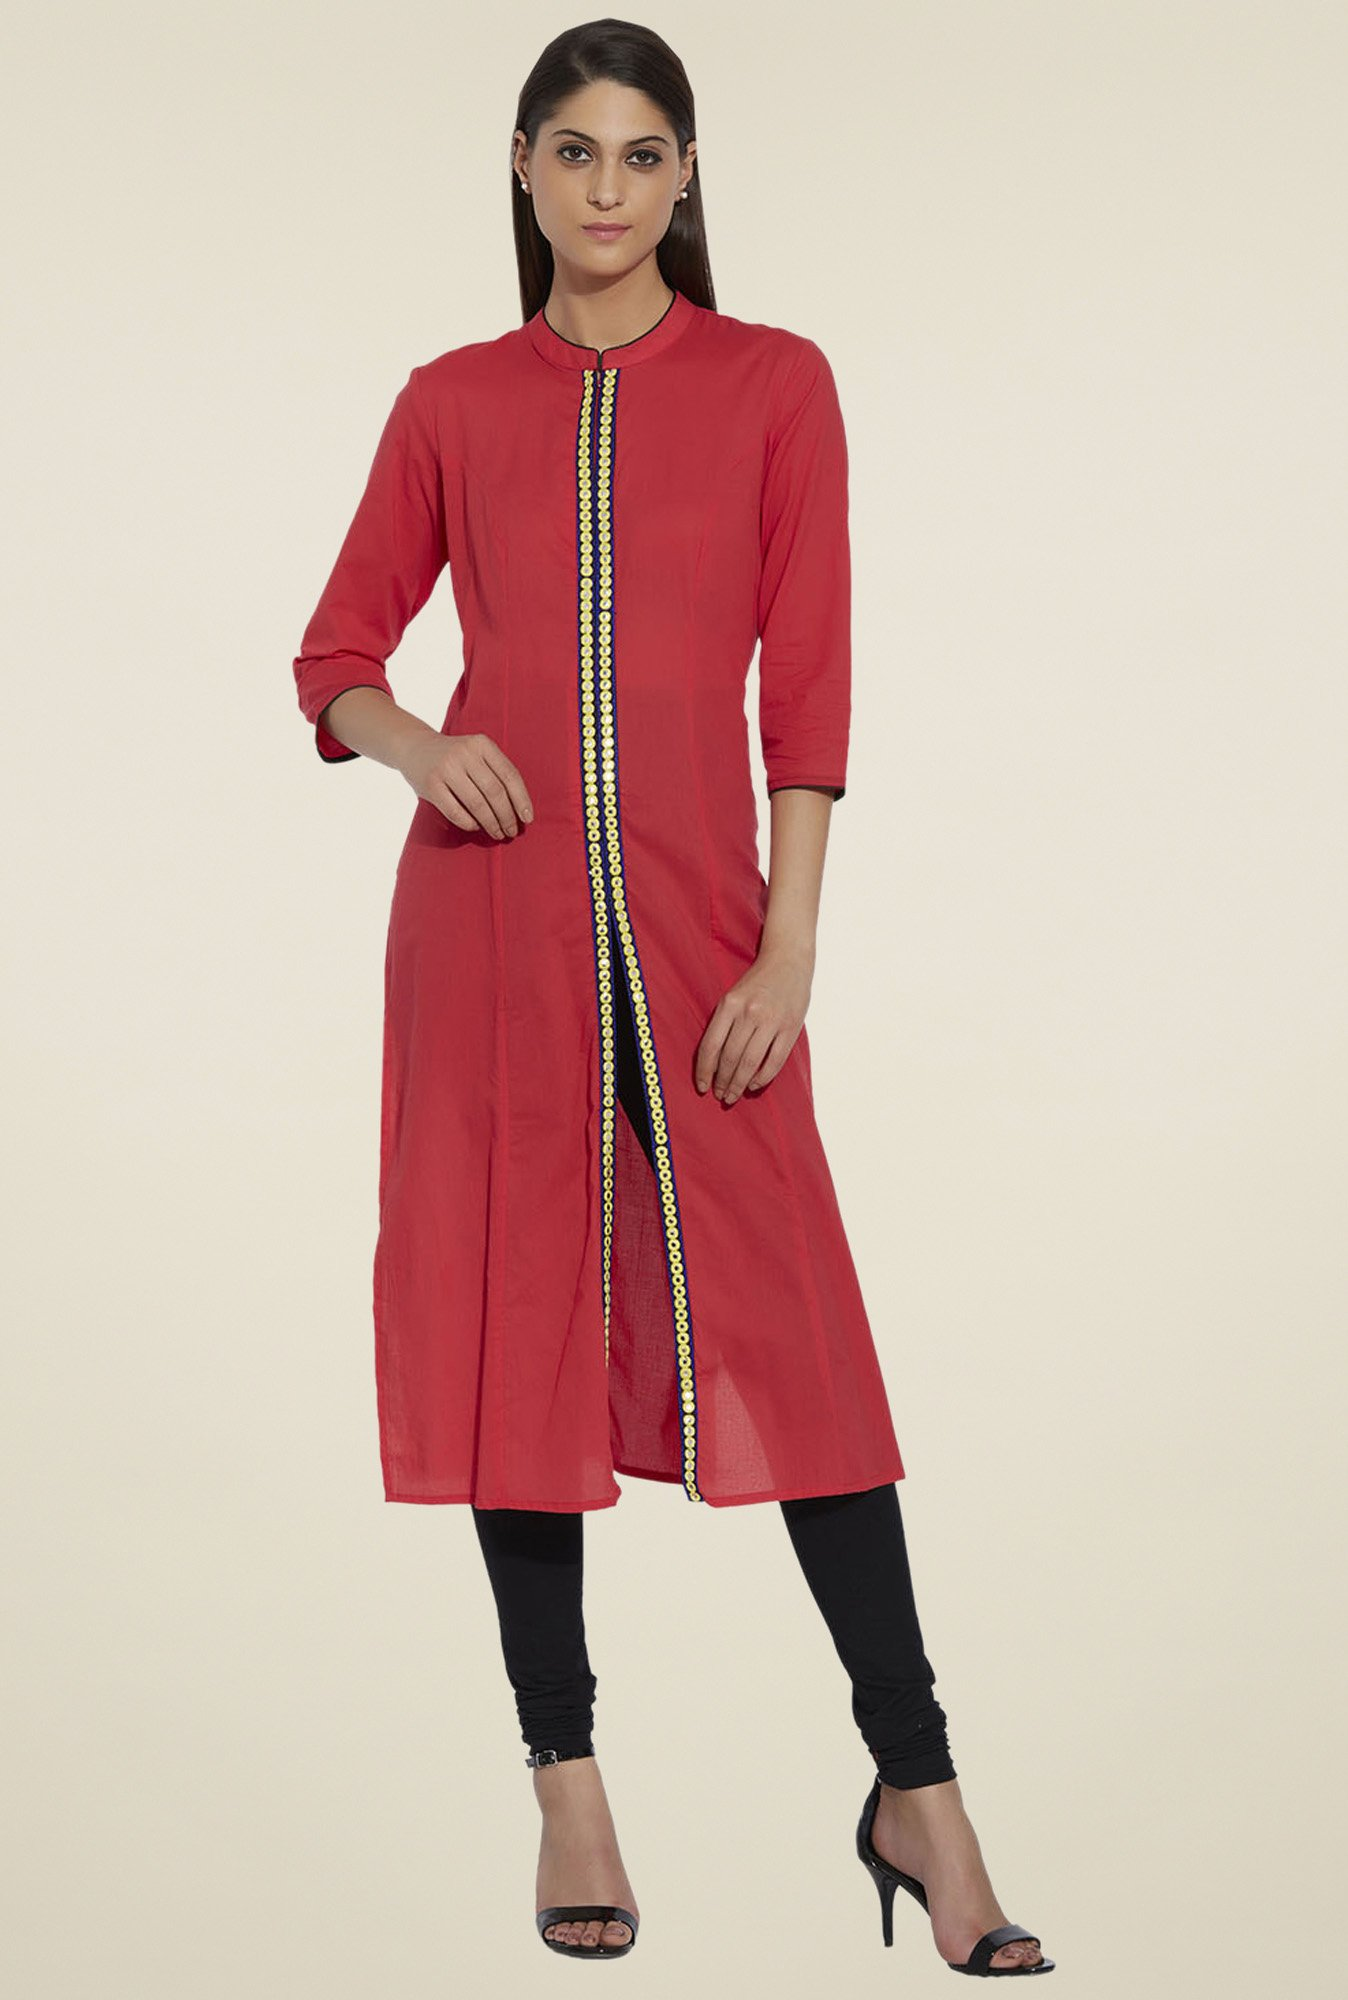 Globus Red 3/4th Sleeves Regular Fit Kurta